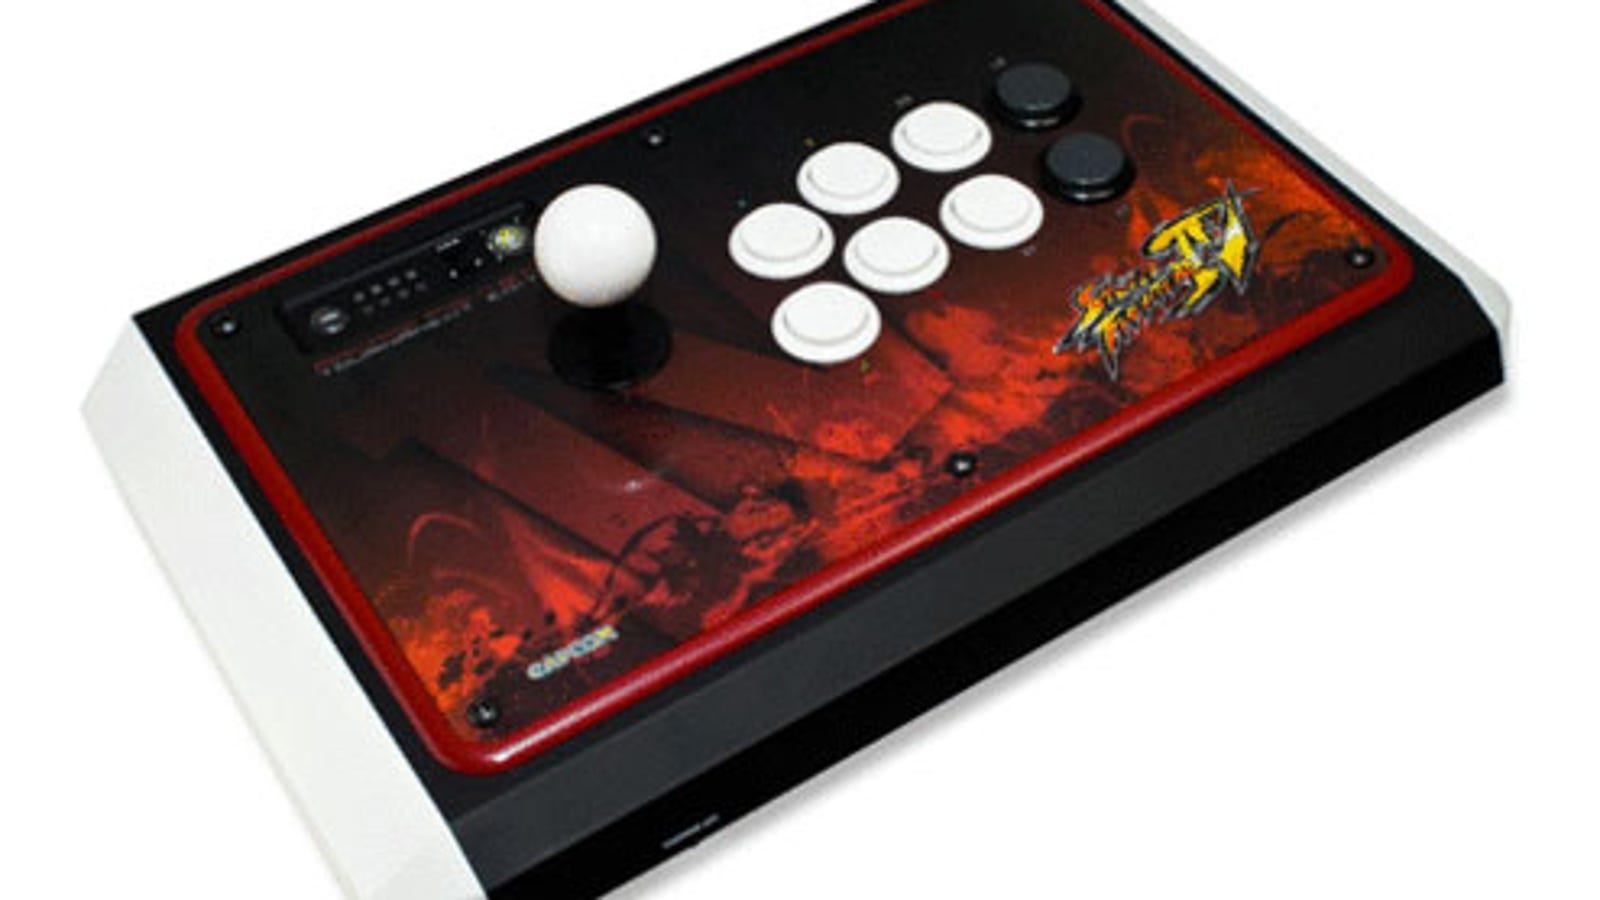 Super street fighter iv tournament edition fight stick youtube.